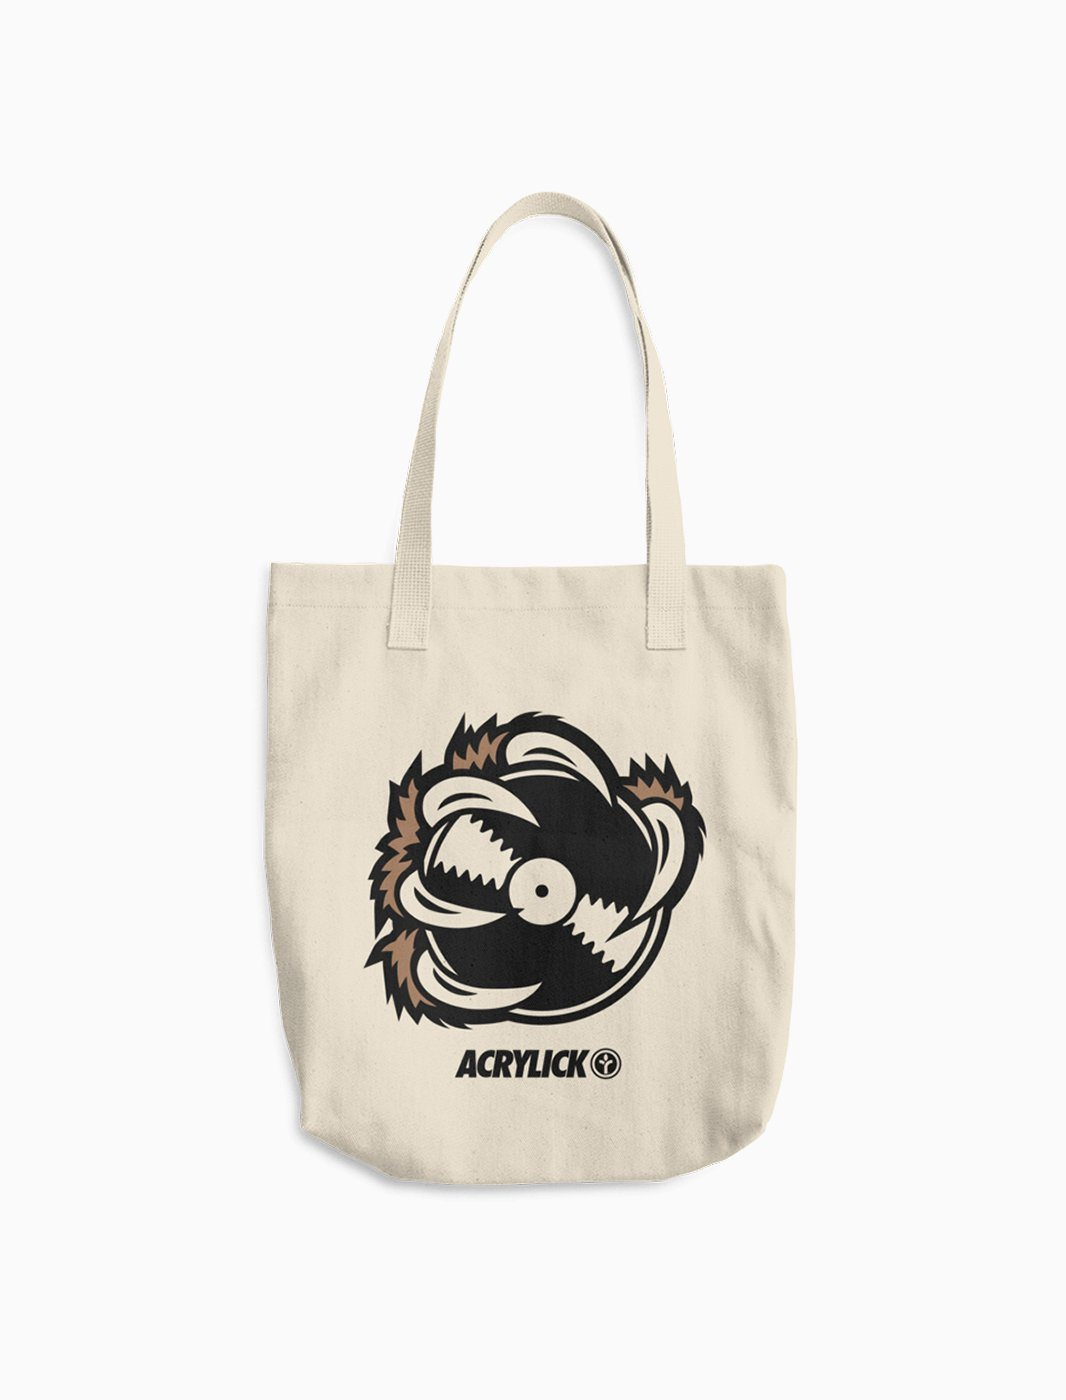 Tote Bag - Canvas - Record - Acrylick - Music